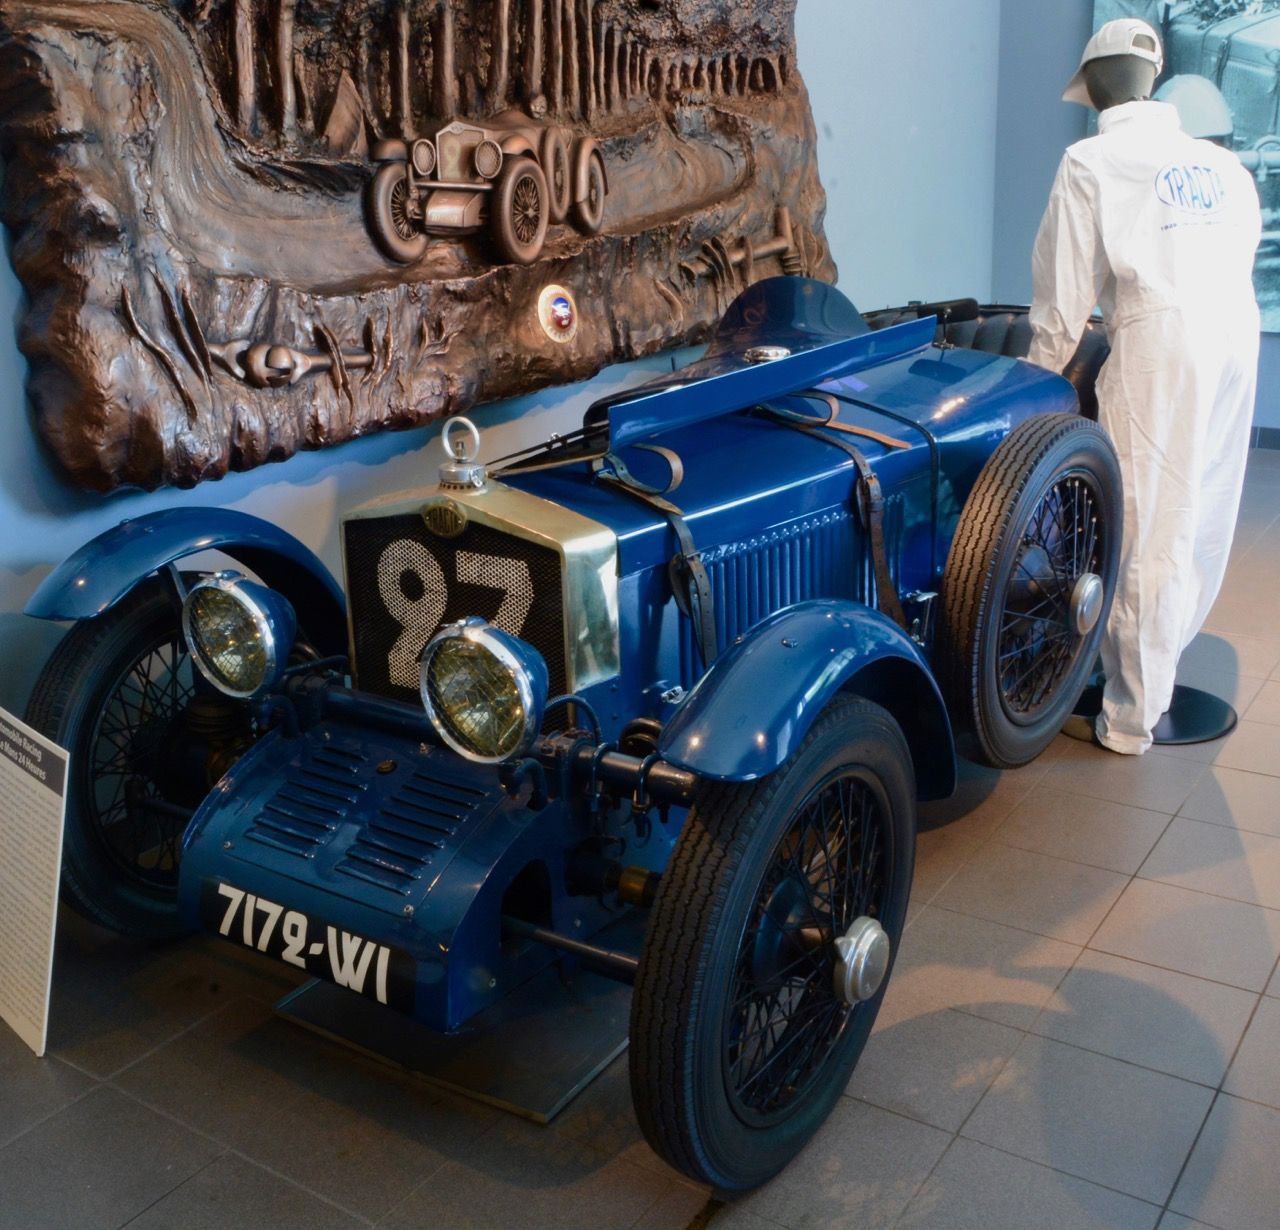 1929 Tracta A roadster, one of two, finished first in class at Le Mans | Jim McCraw photos,